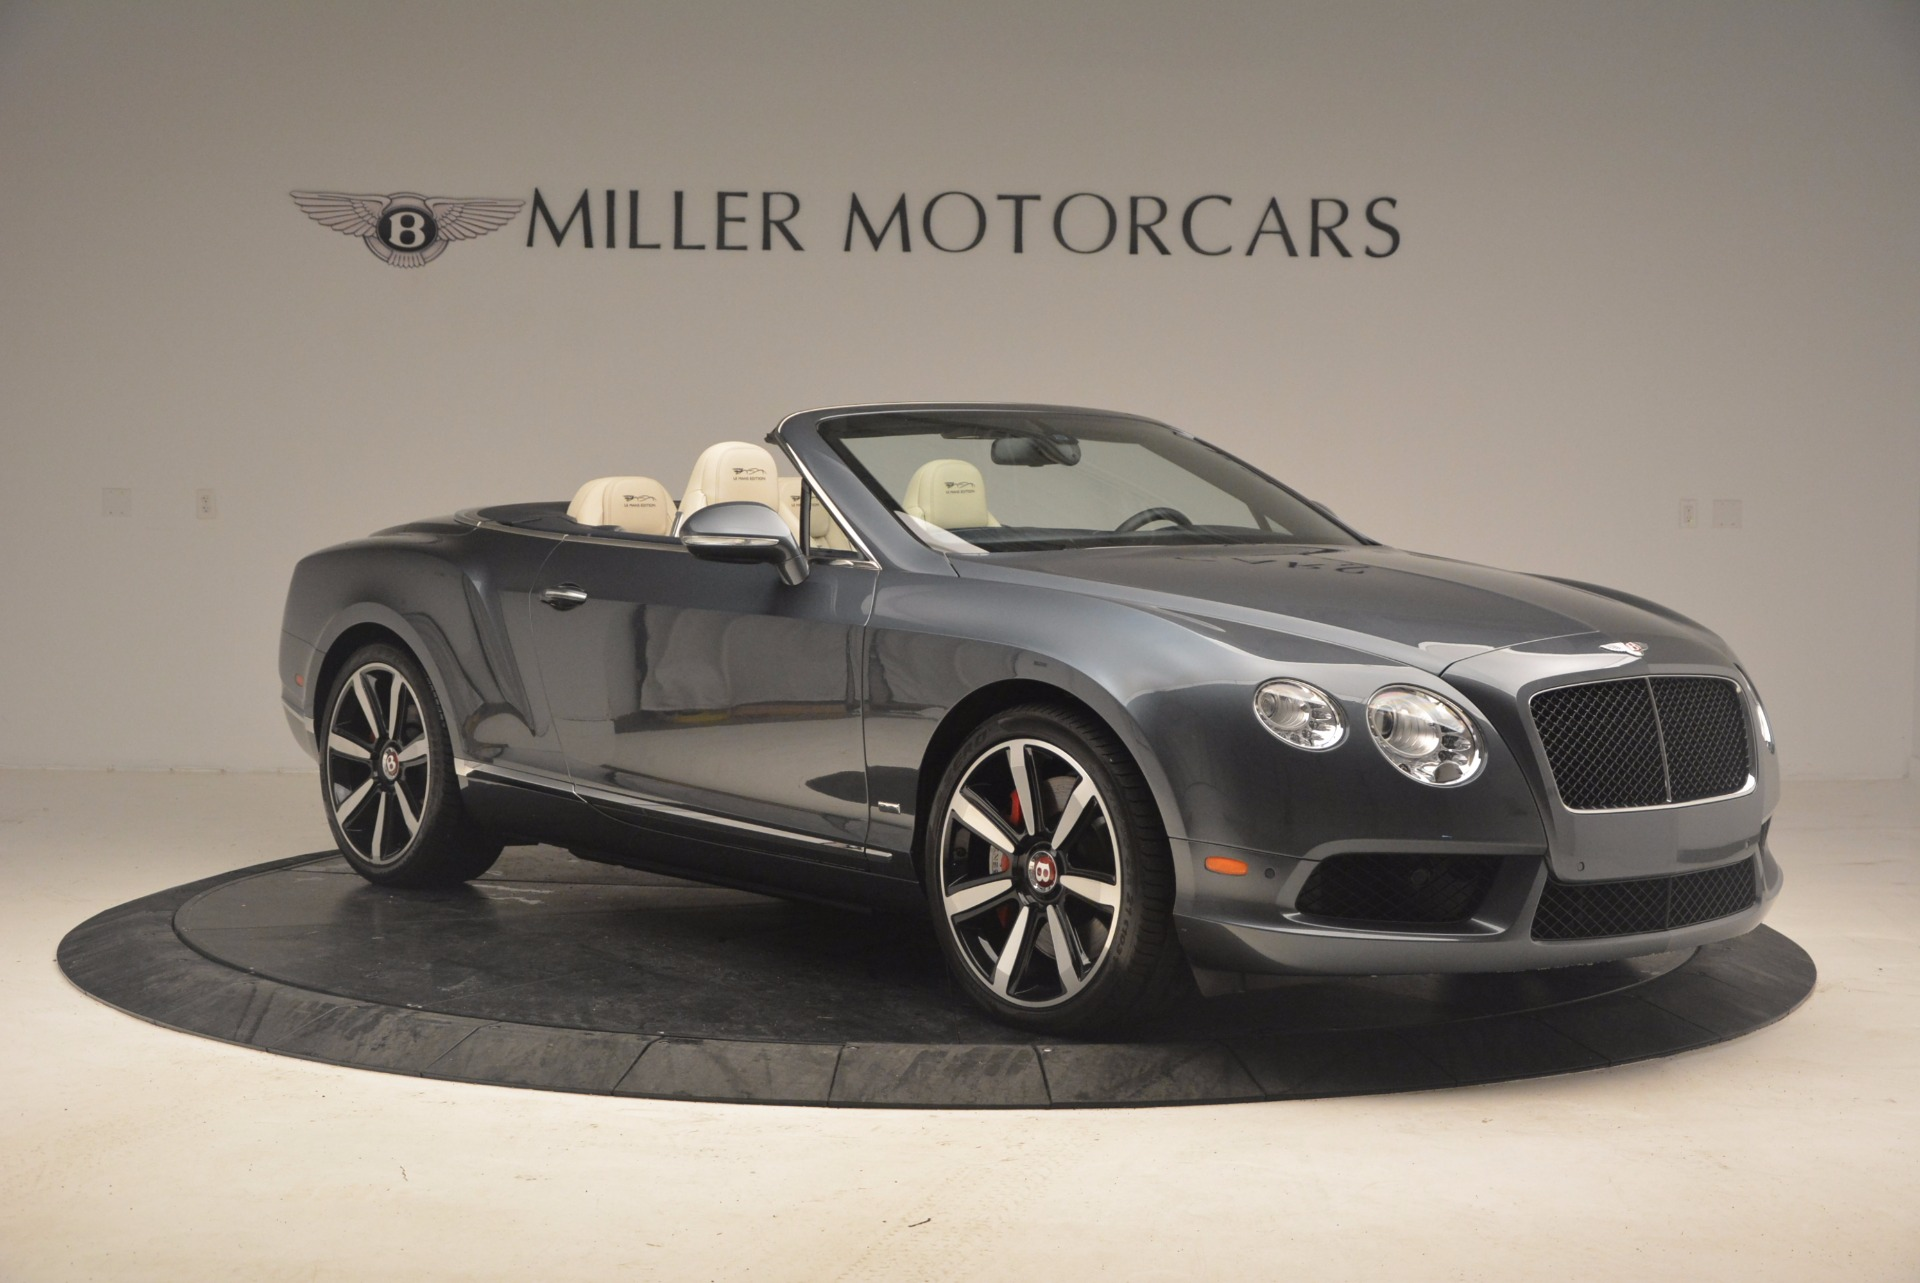 Used 2013 Bentley Continental GT V8 Le Mans Edition, 1 of 48 For Sale In Westport, CT 1288_p10